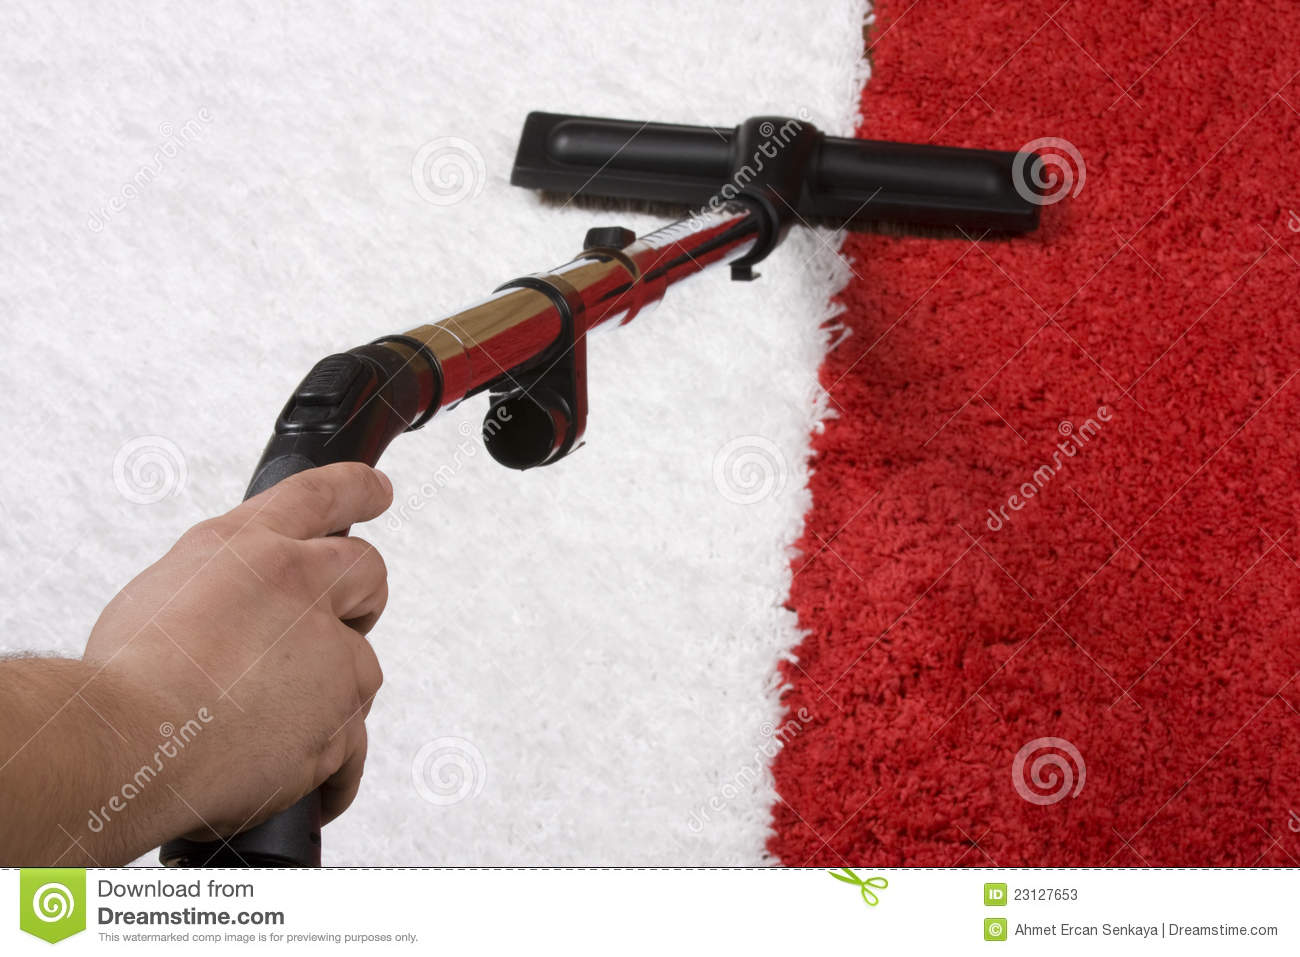 Red and White Carpet cleaning